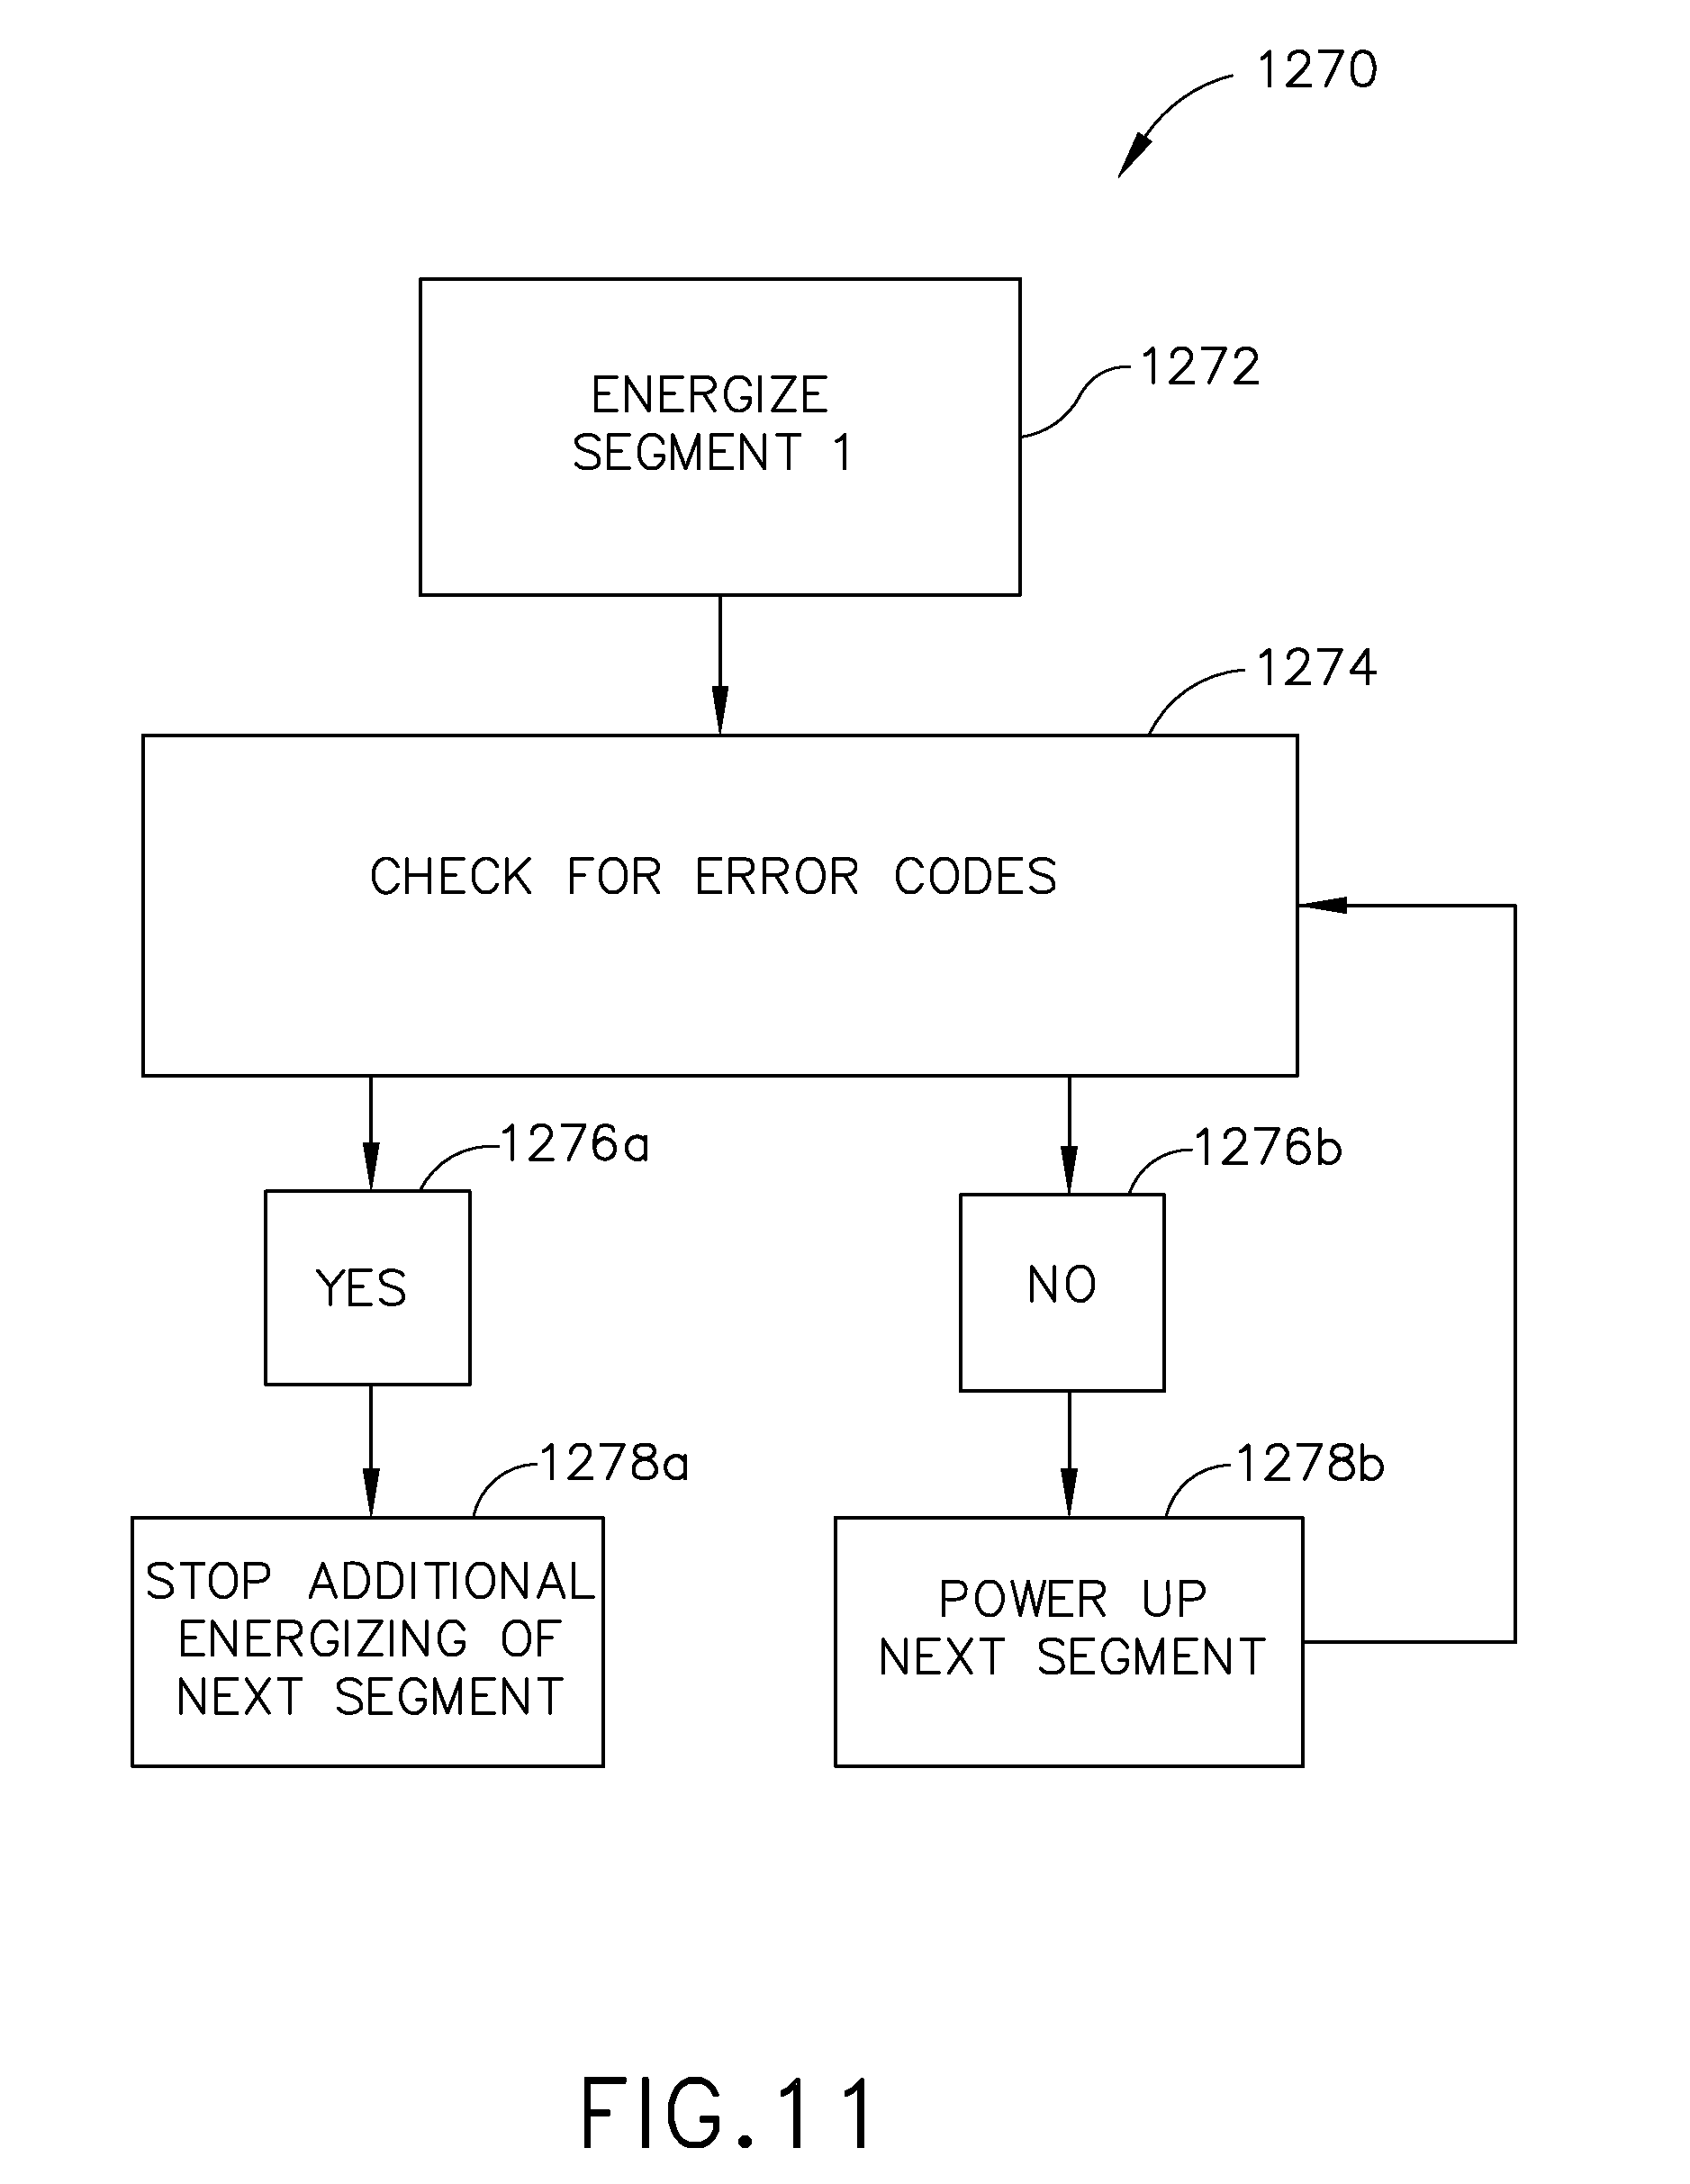 Us9733663b2 Power Management Through Segmented Circuit And Wire Color Code Additionally Thomas Betts Duct On Iec Wiring Variable Voltage Protection Google Patents